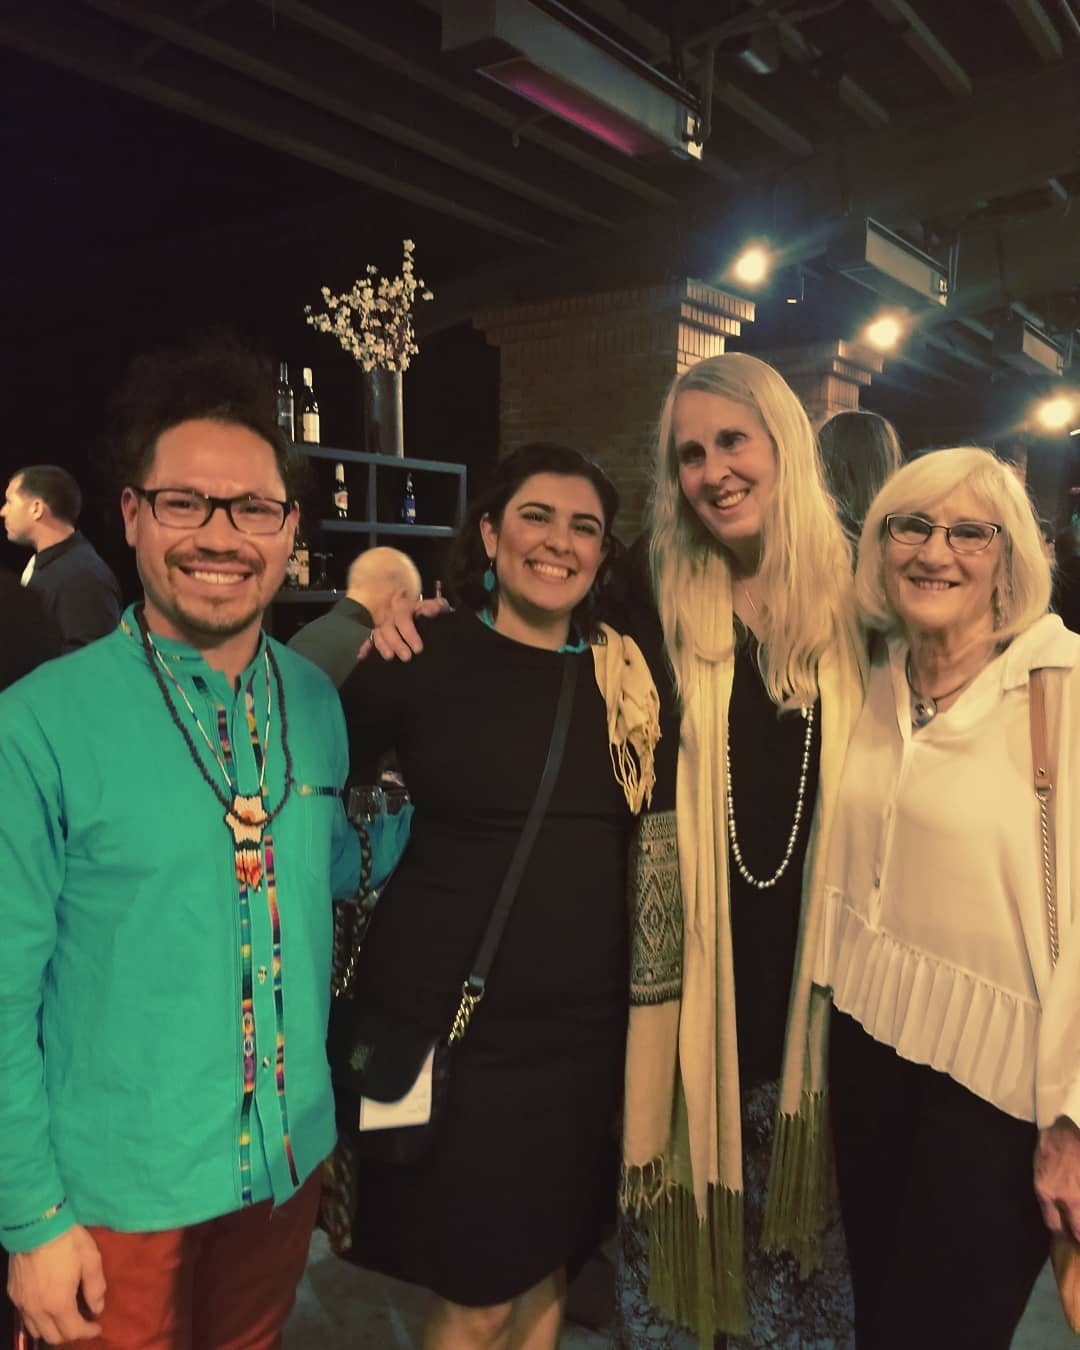 image description: JC Gonzales, Meheen Ruby, Marcia Perry, and Janet Myer at the Arts Council Champion of the Arts Gala.